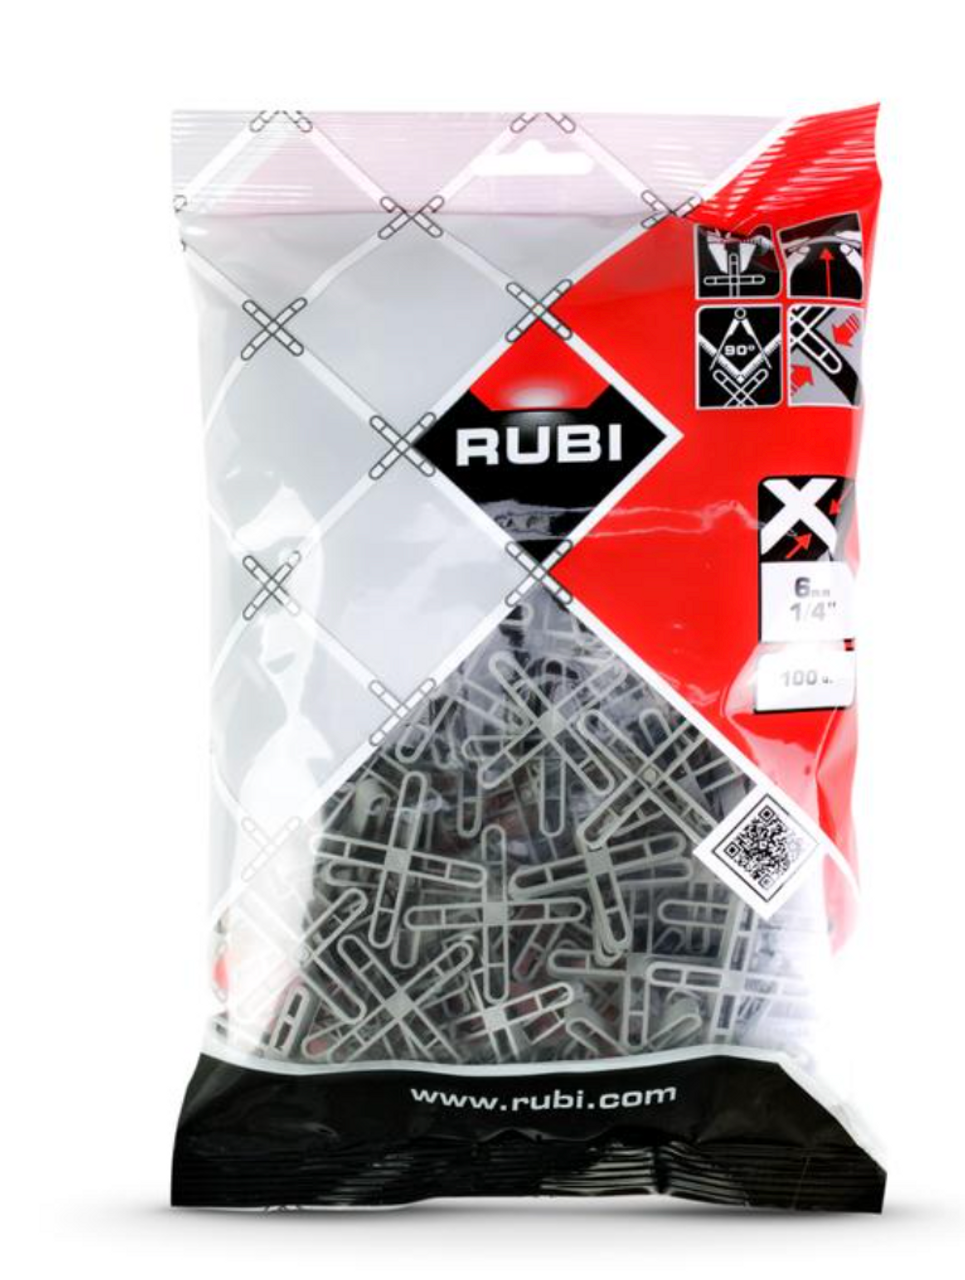 Rubi Tile Spacer 1/16